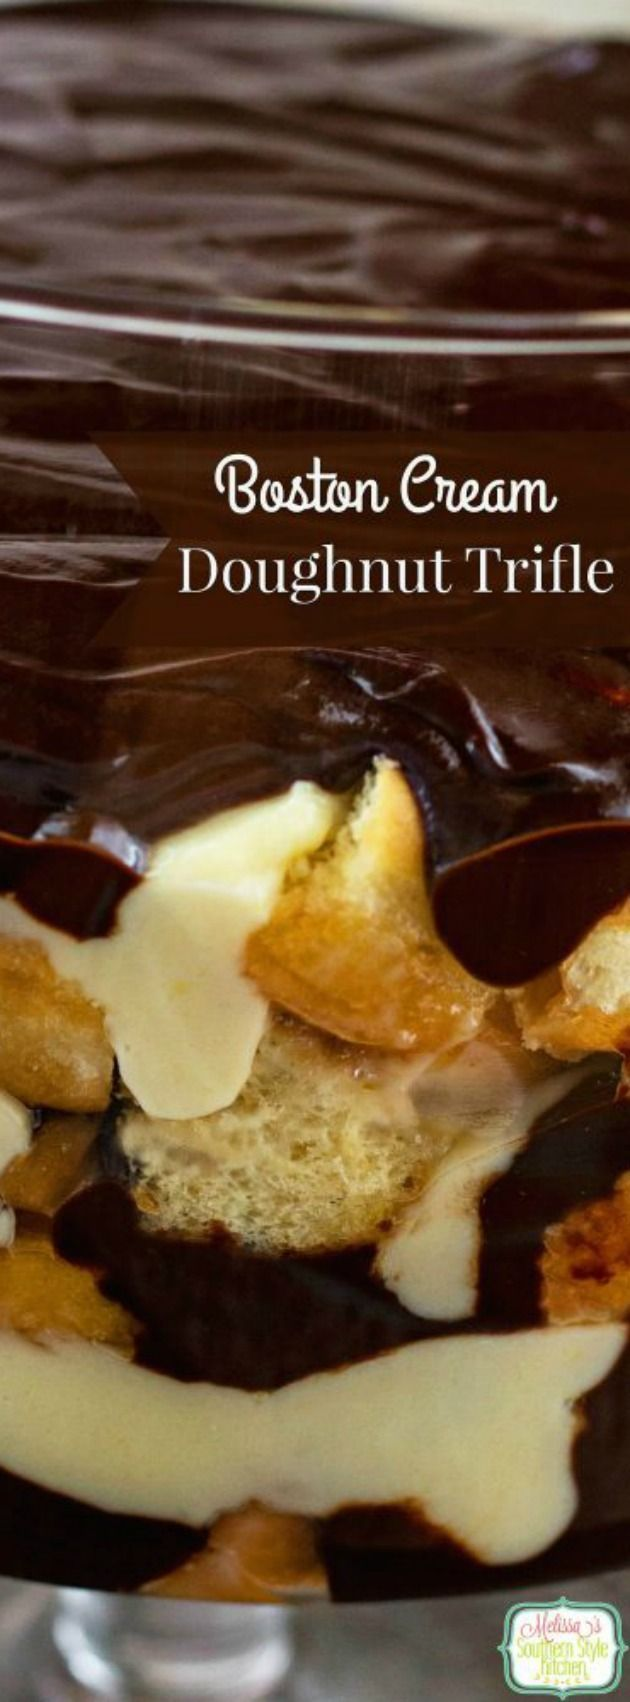 This Boston Cream Doughnut Trifle from Melissa's Southern Style Kitchen is so irresistible and delicious that everyone in your family will want to try it! Inspired by the Krispy Kreme chocolate glazed custard filled doughnut, this trifle has layers of fluffy glazed doughnuts, chocolate ganache, and a wonderful homemade vanilla custard.